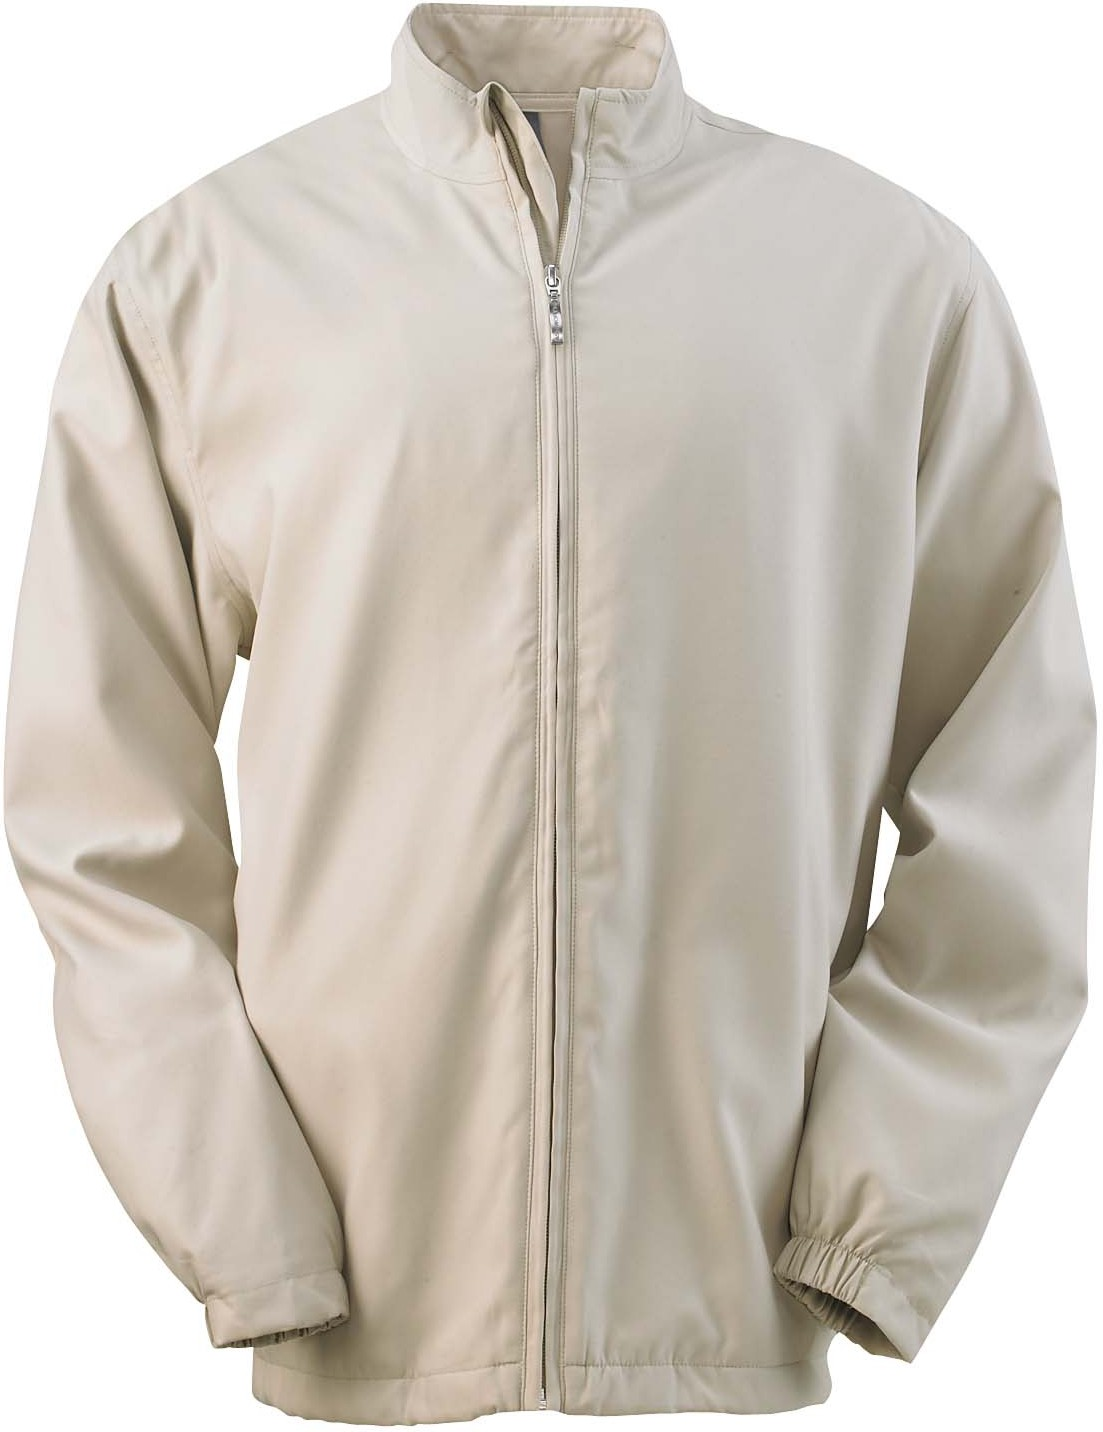 Ashworth Mens Golf Jackets